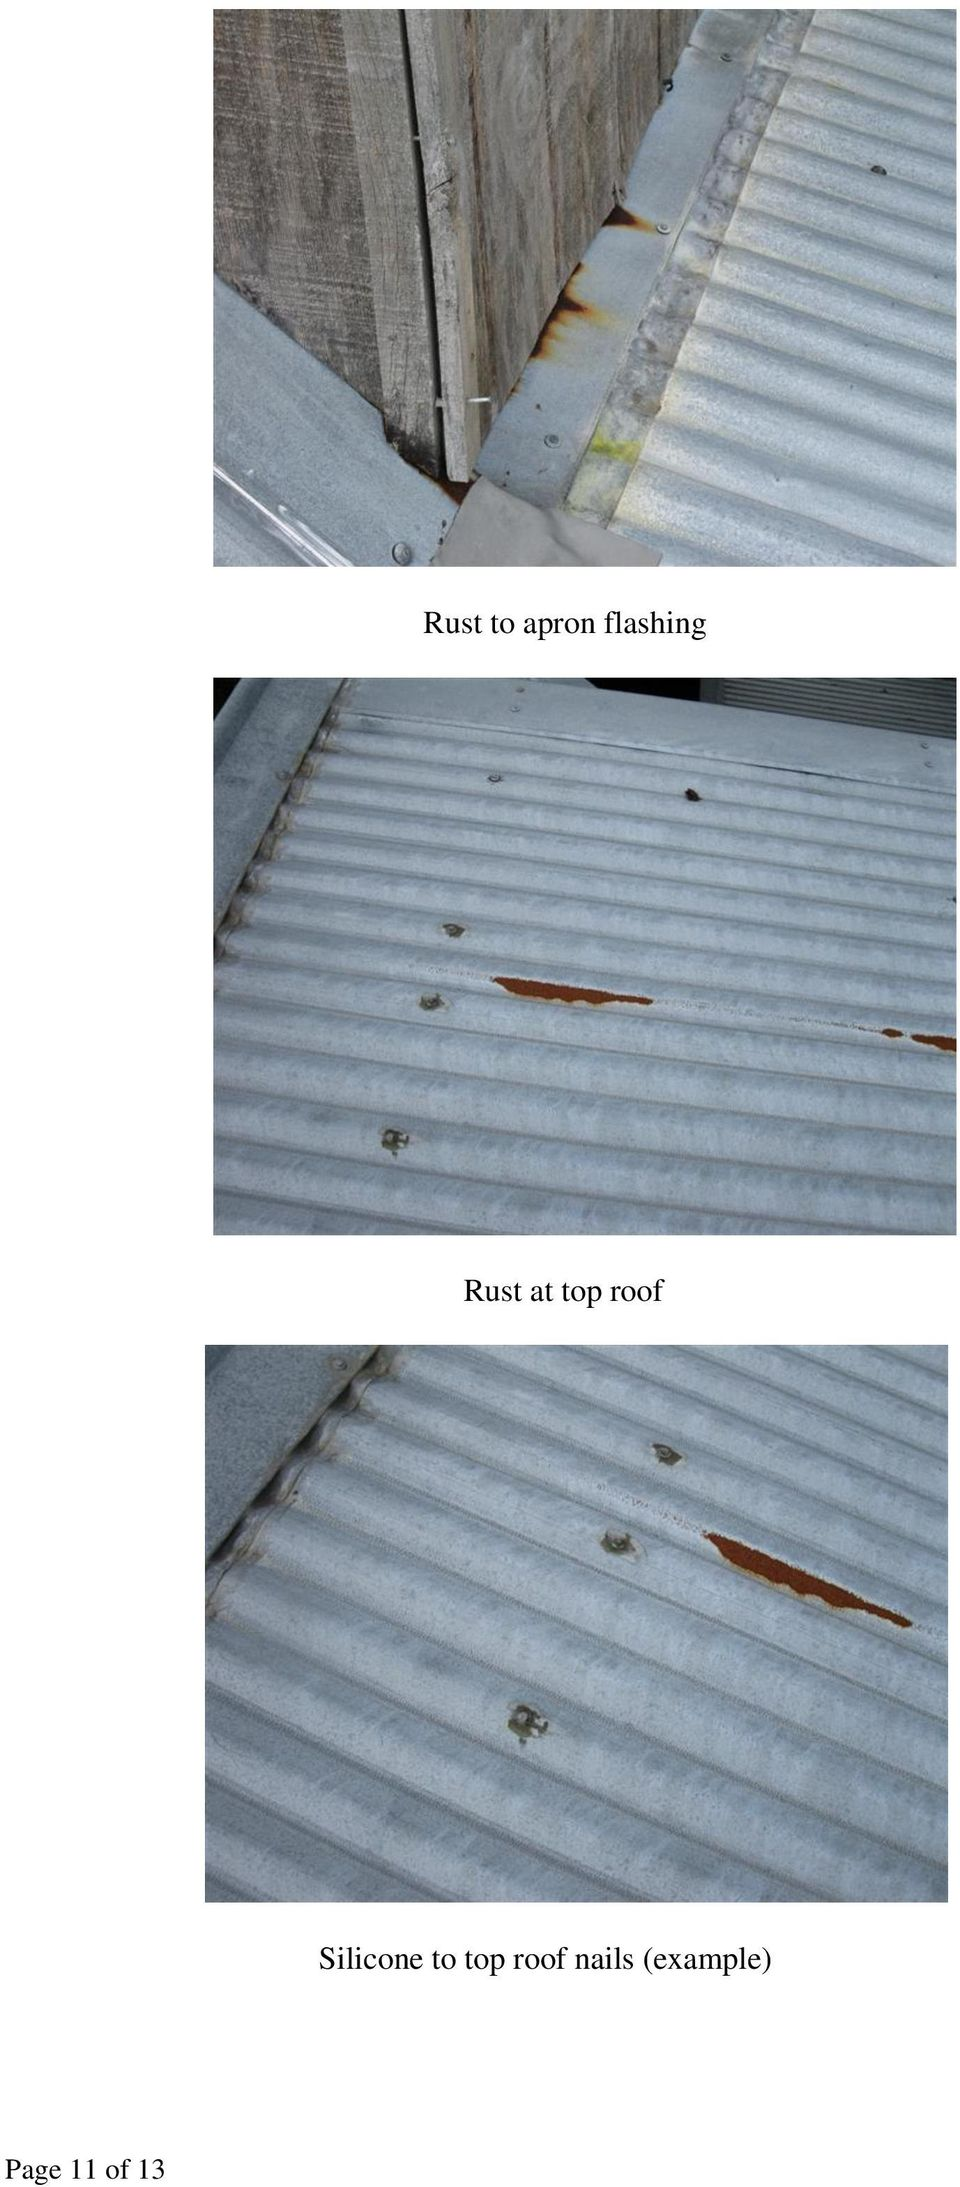 Silicone to top roof